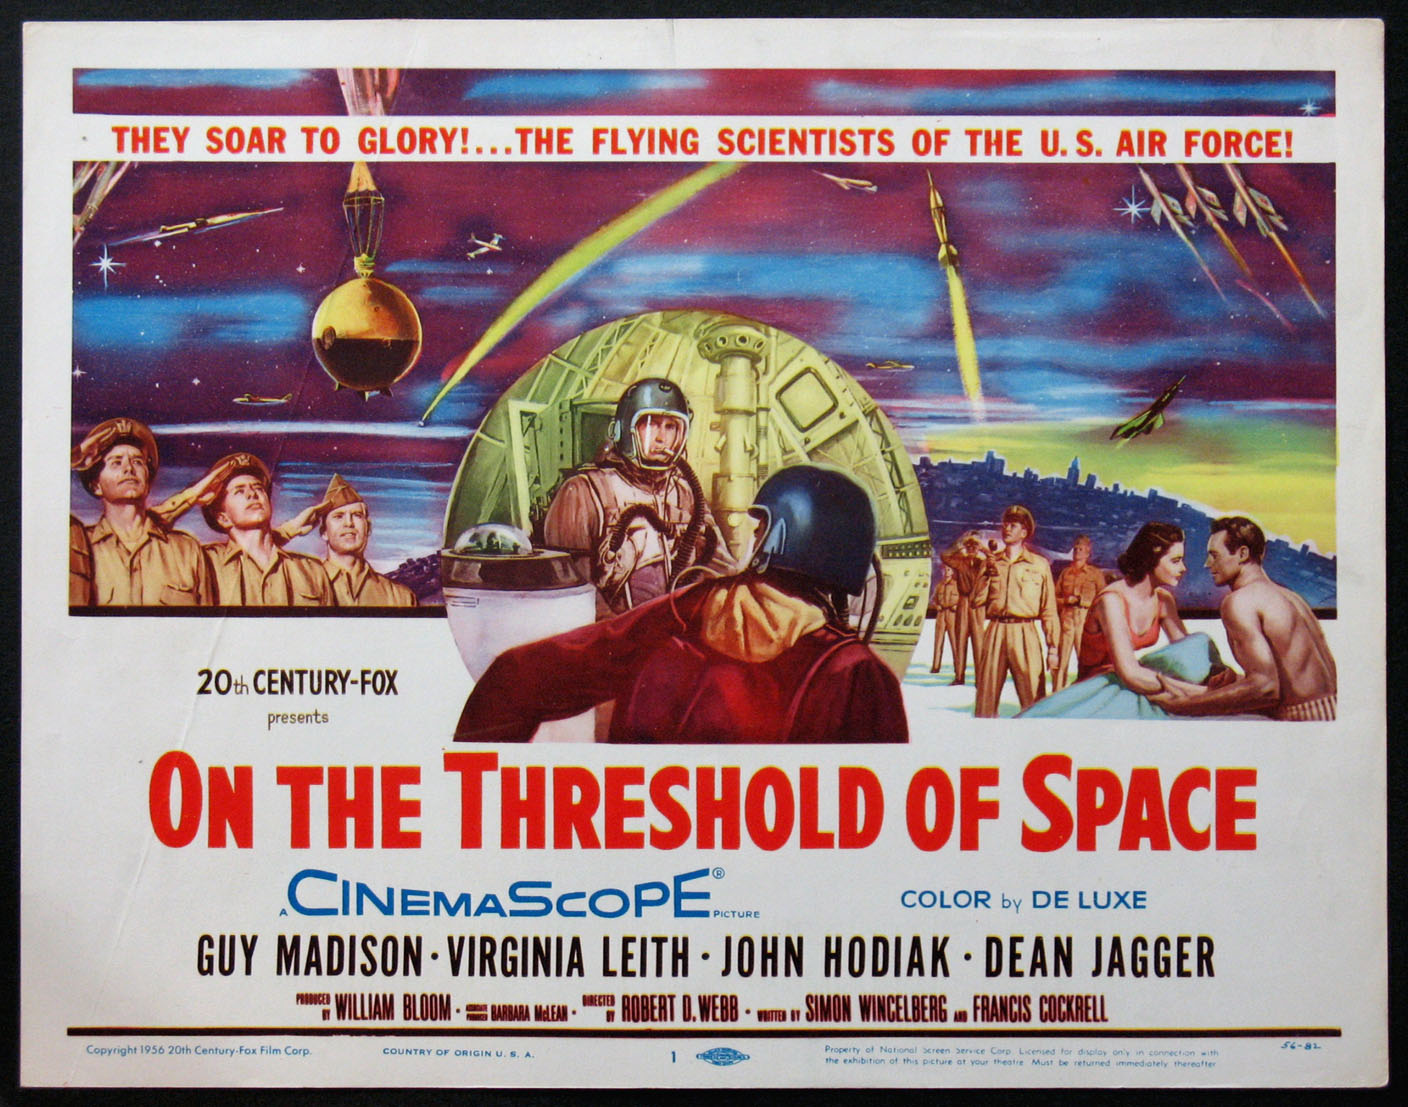 ON THE THRESHOLD OF SPACE @ FilmPosters.com